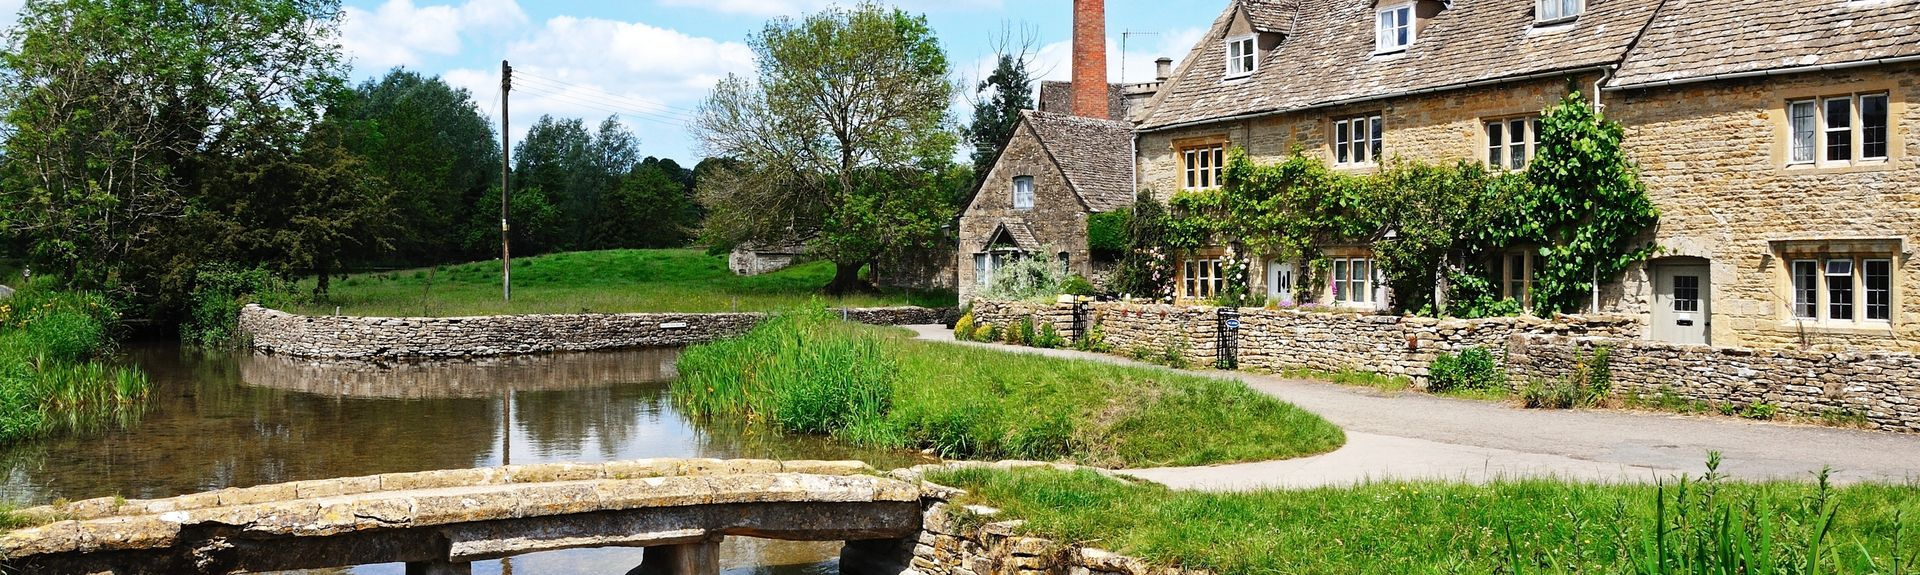 Cotswolds, England, United Kingdom